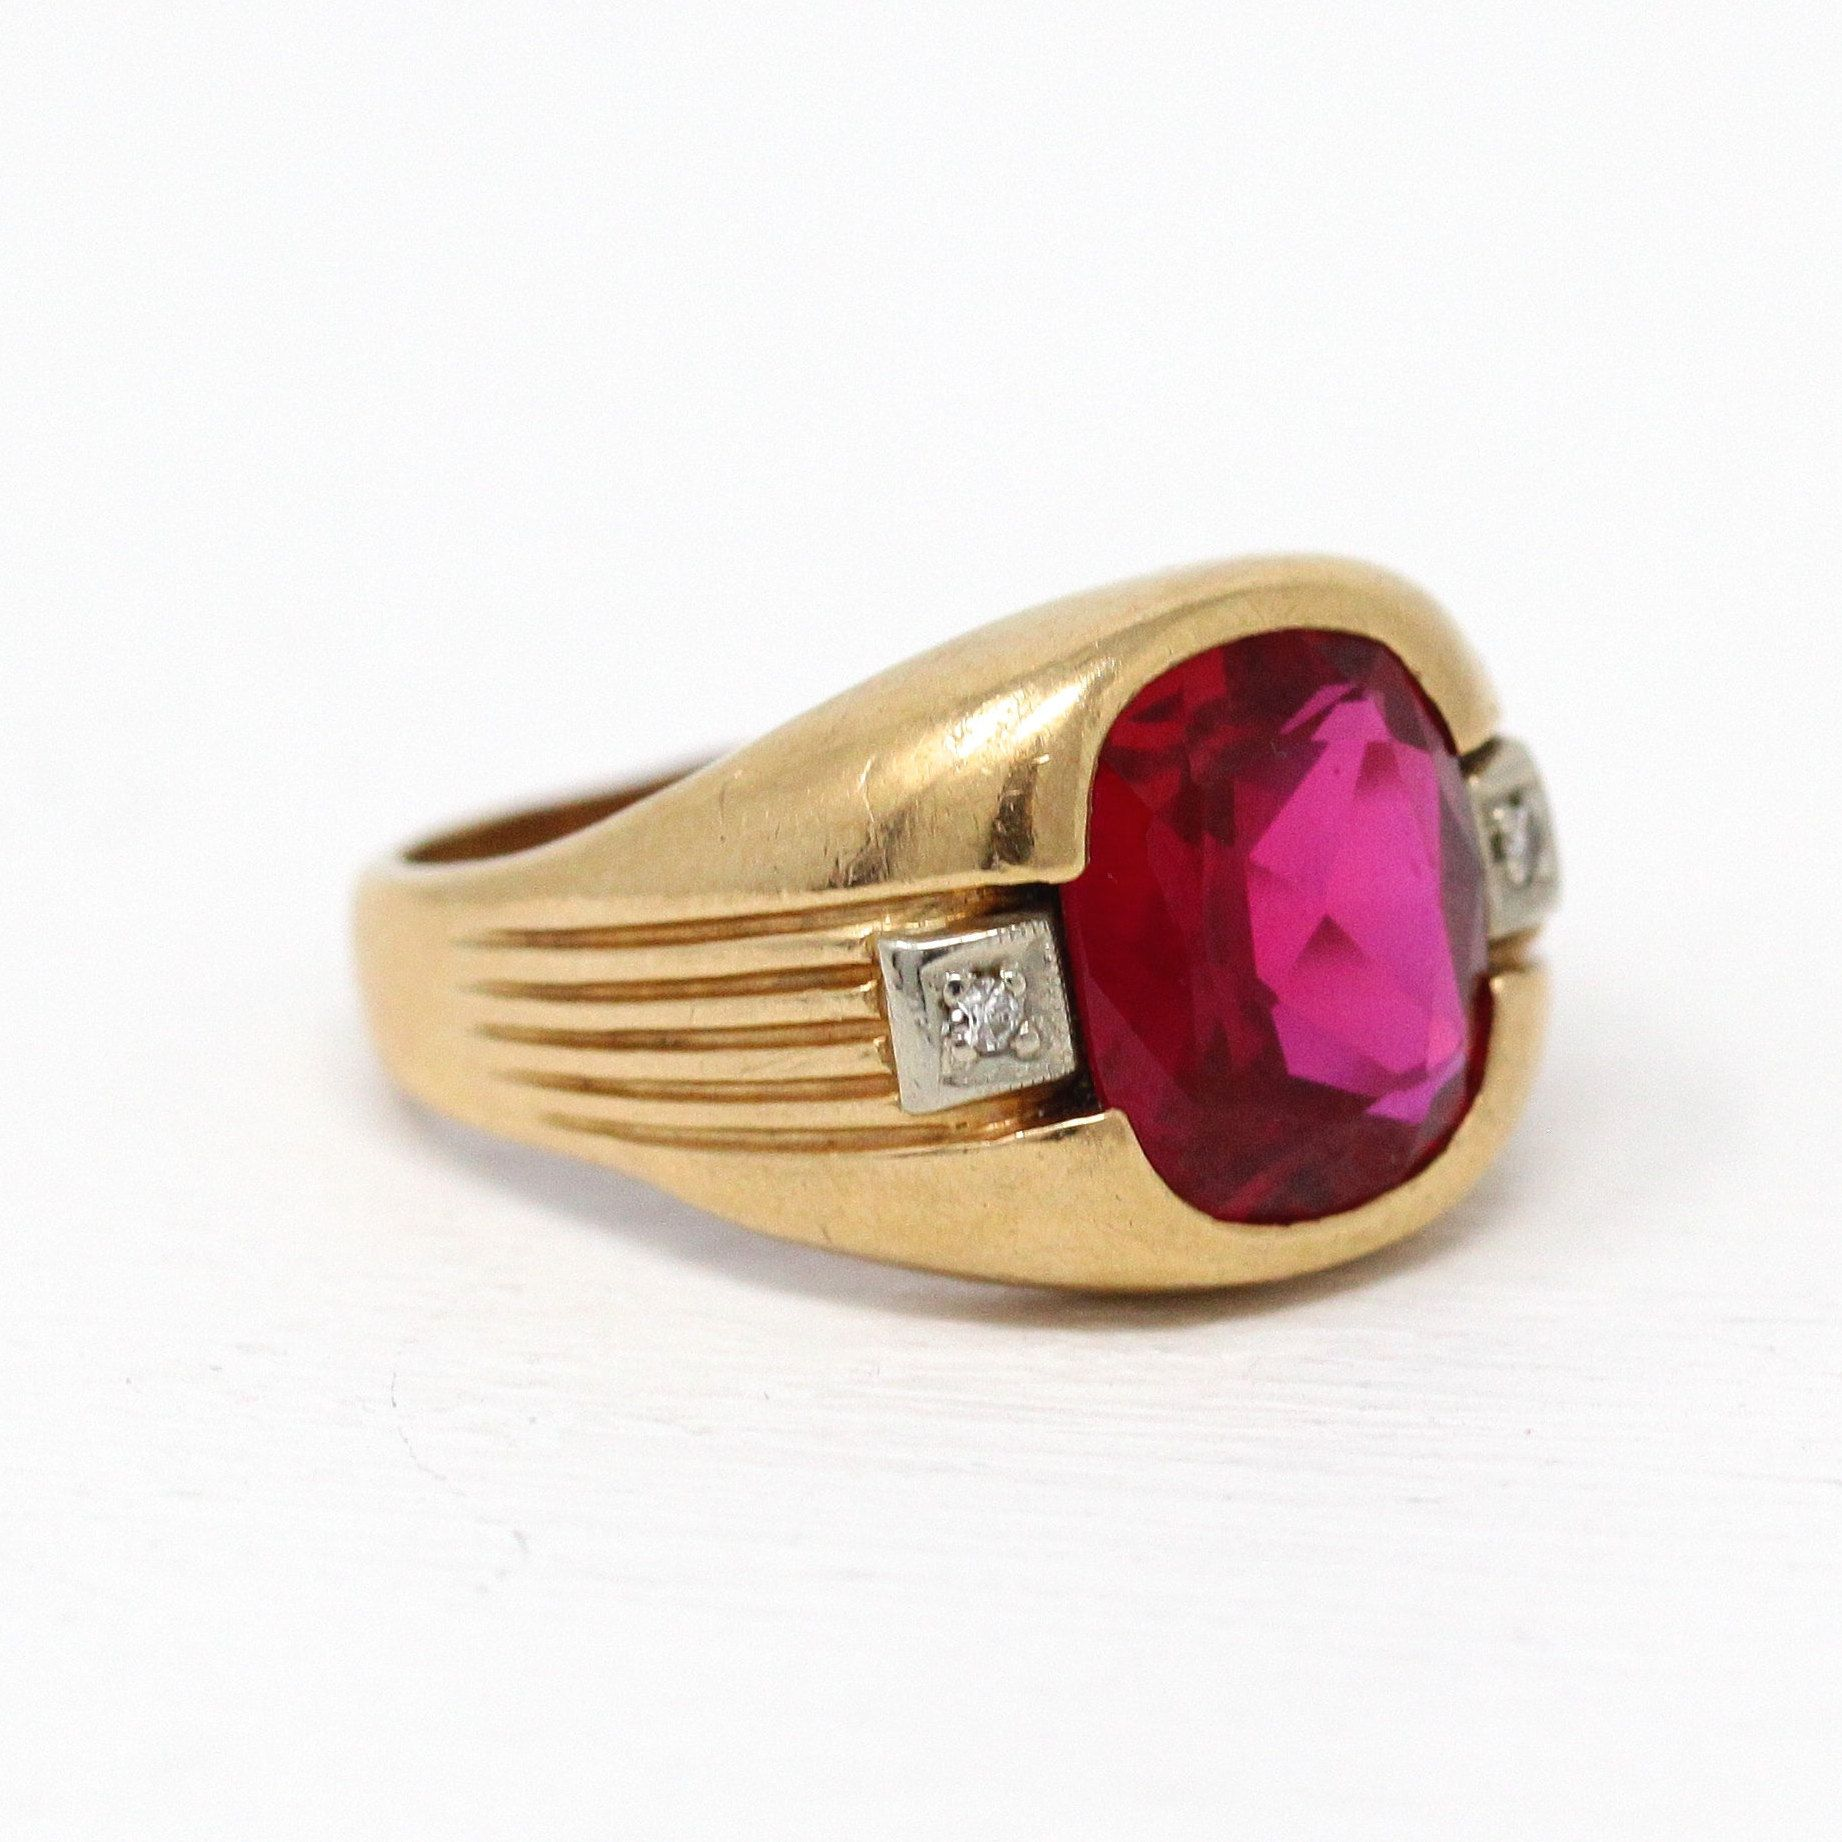 Sale Created Ruby Ring Size 10 1 2 Vintage 10k Yellow Gold 1940s Pink Red July Birthstone Antique Mens Jewelry Antique Rings Vintage Vintage Fine Jewelry